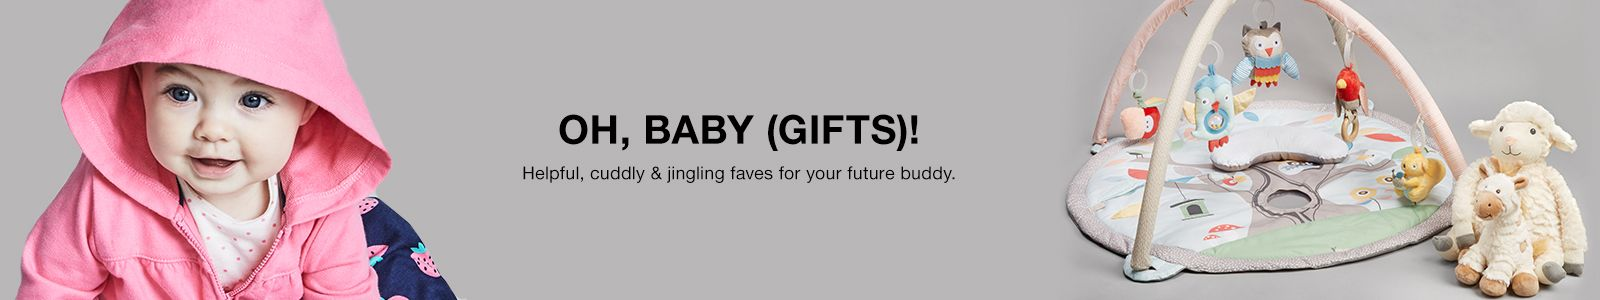 Oh, Baby (Gifts)! Helpful, cuddly and jingling faves for your future buddy